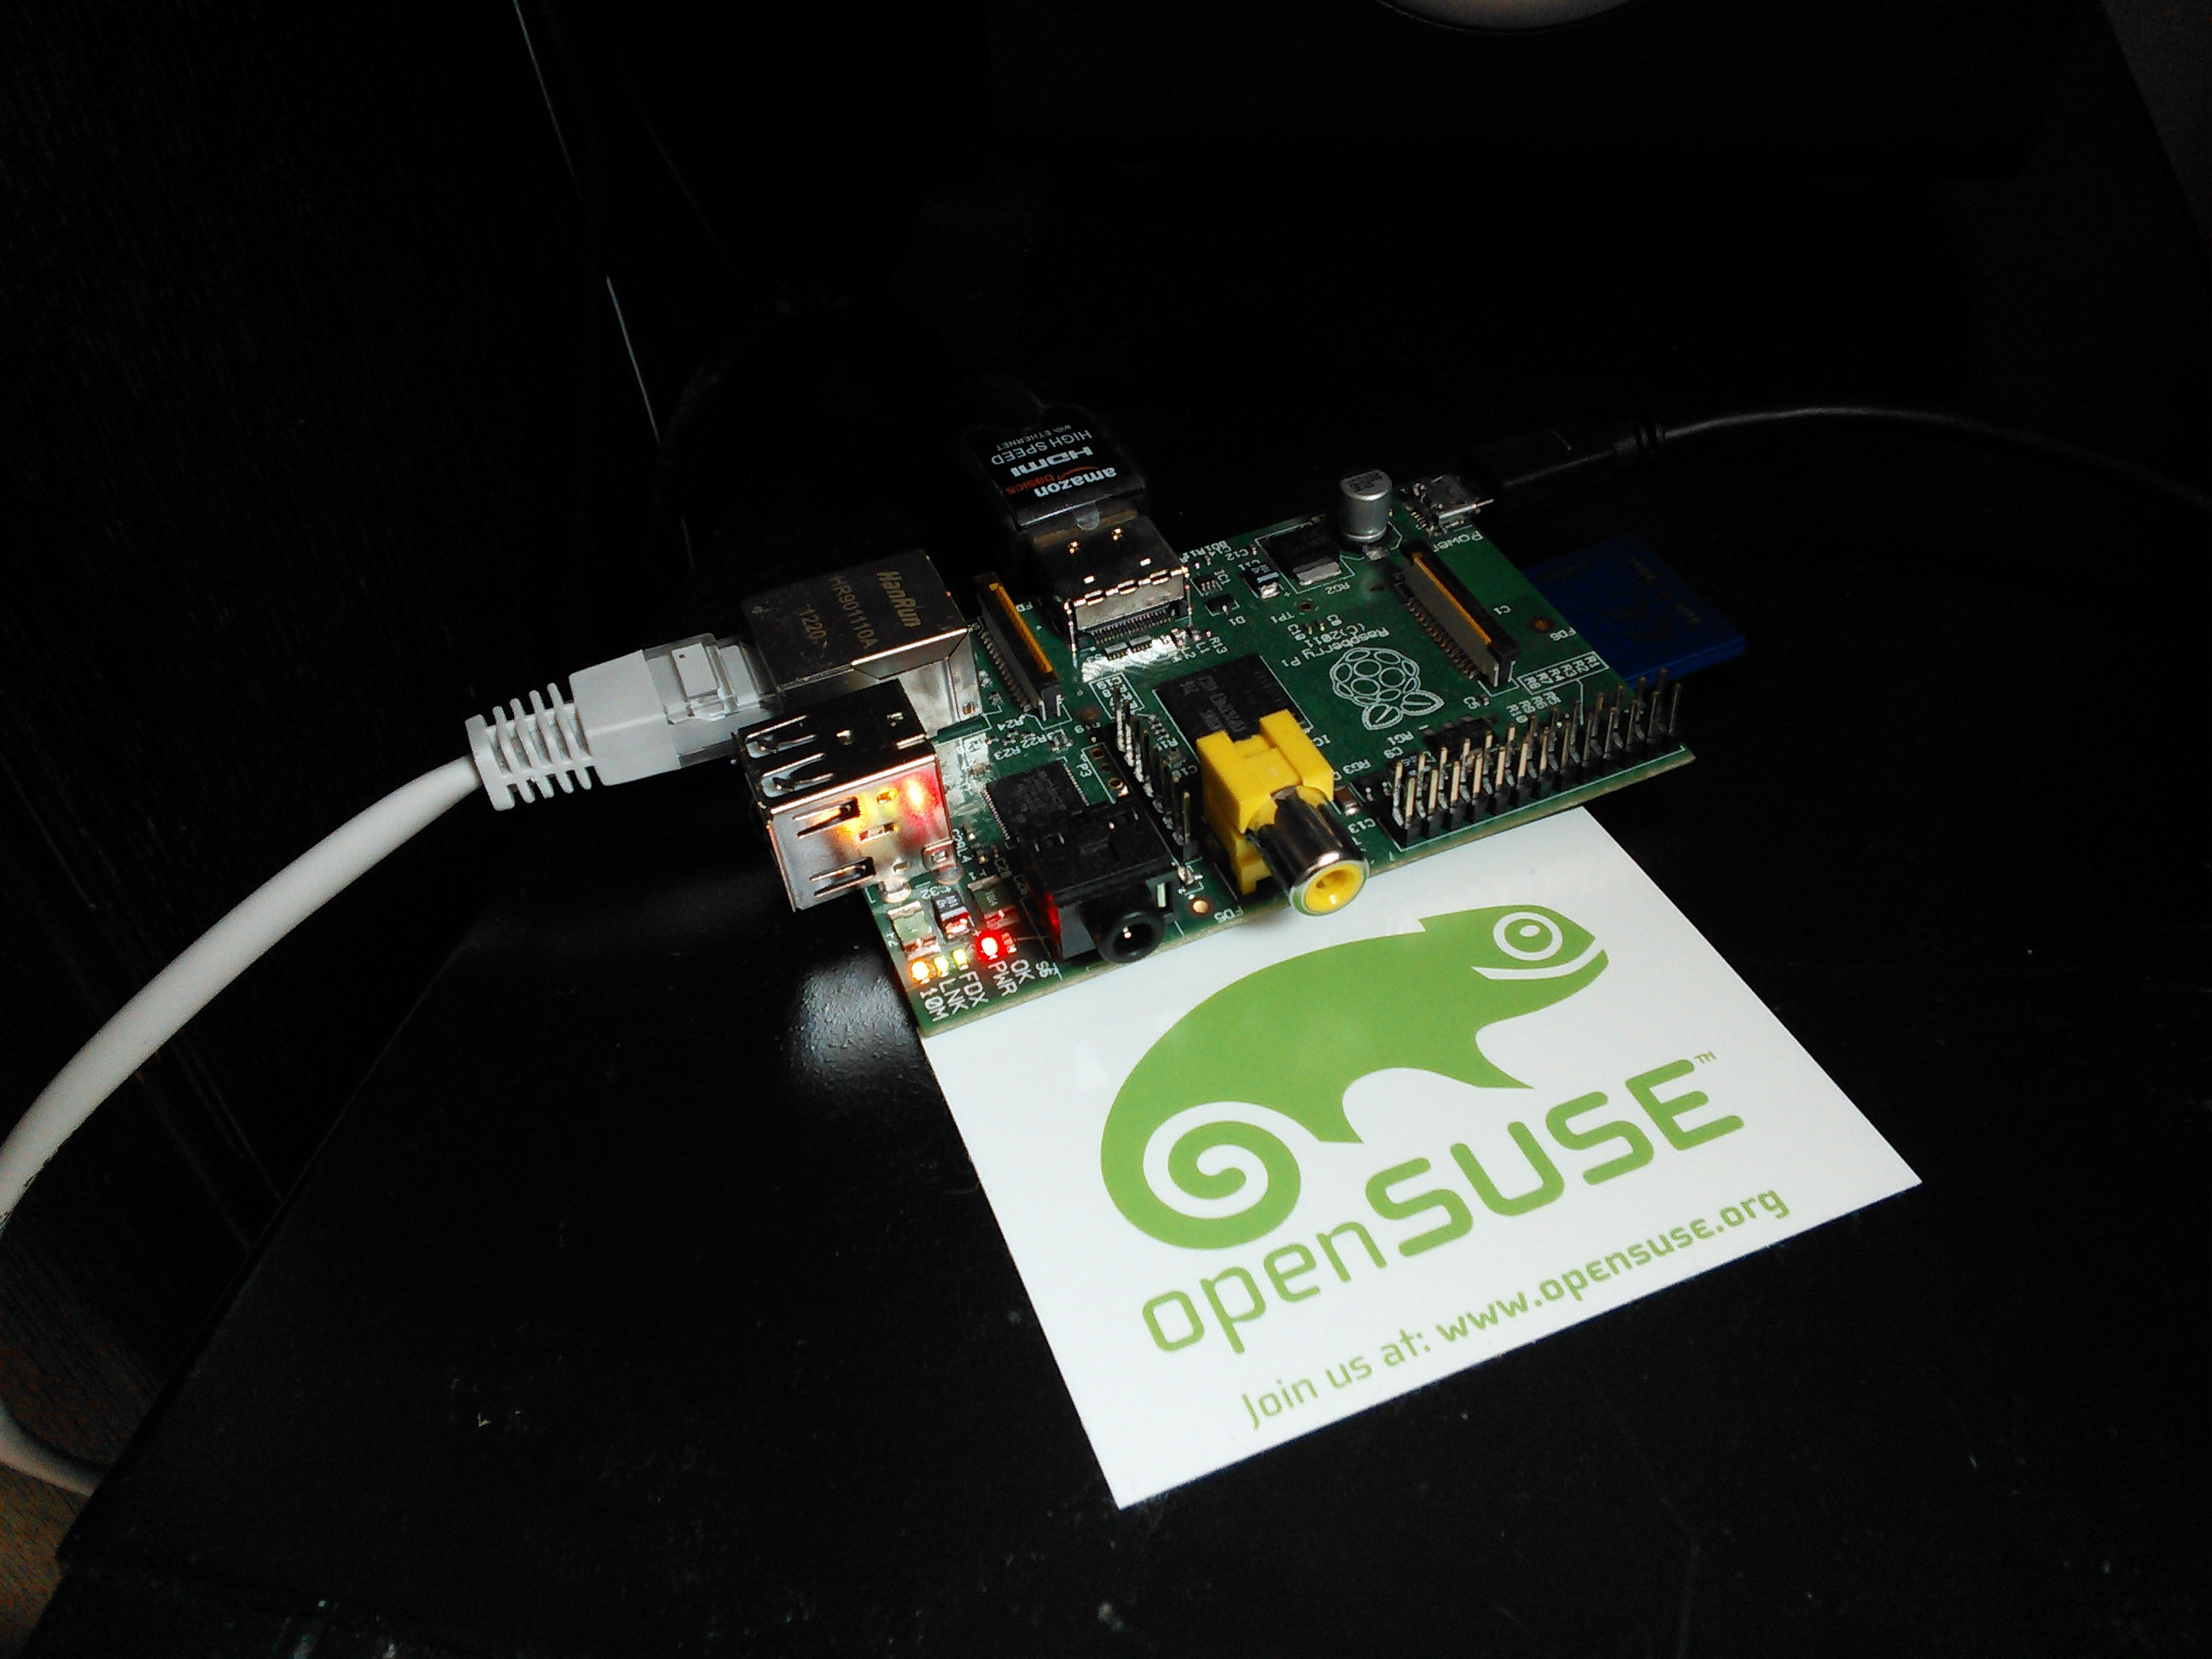 9 opensuse 42.3